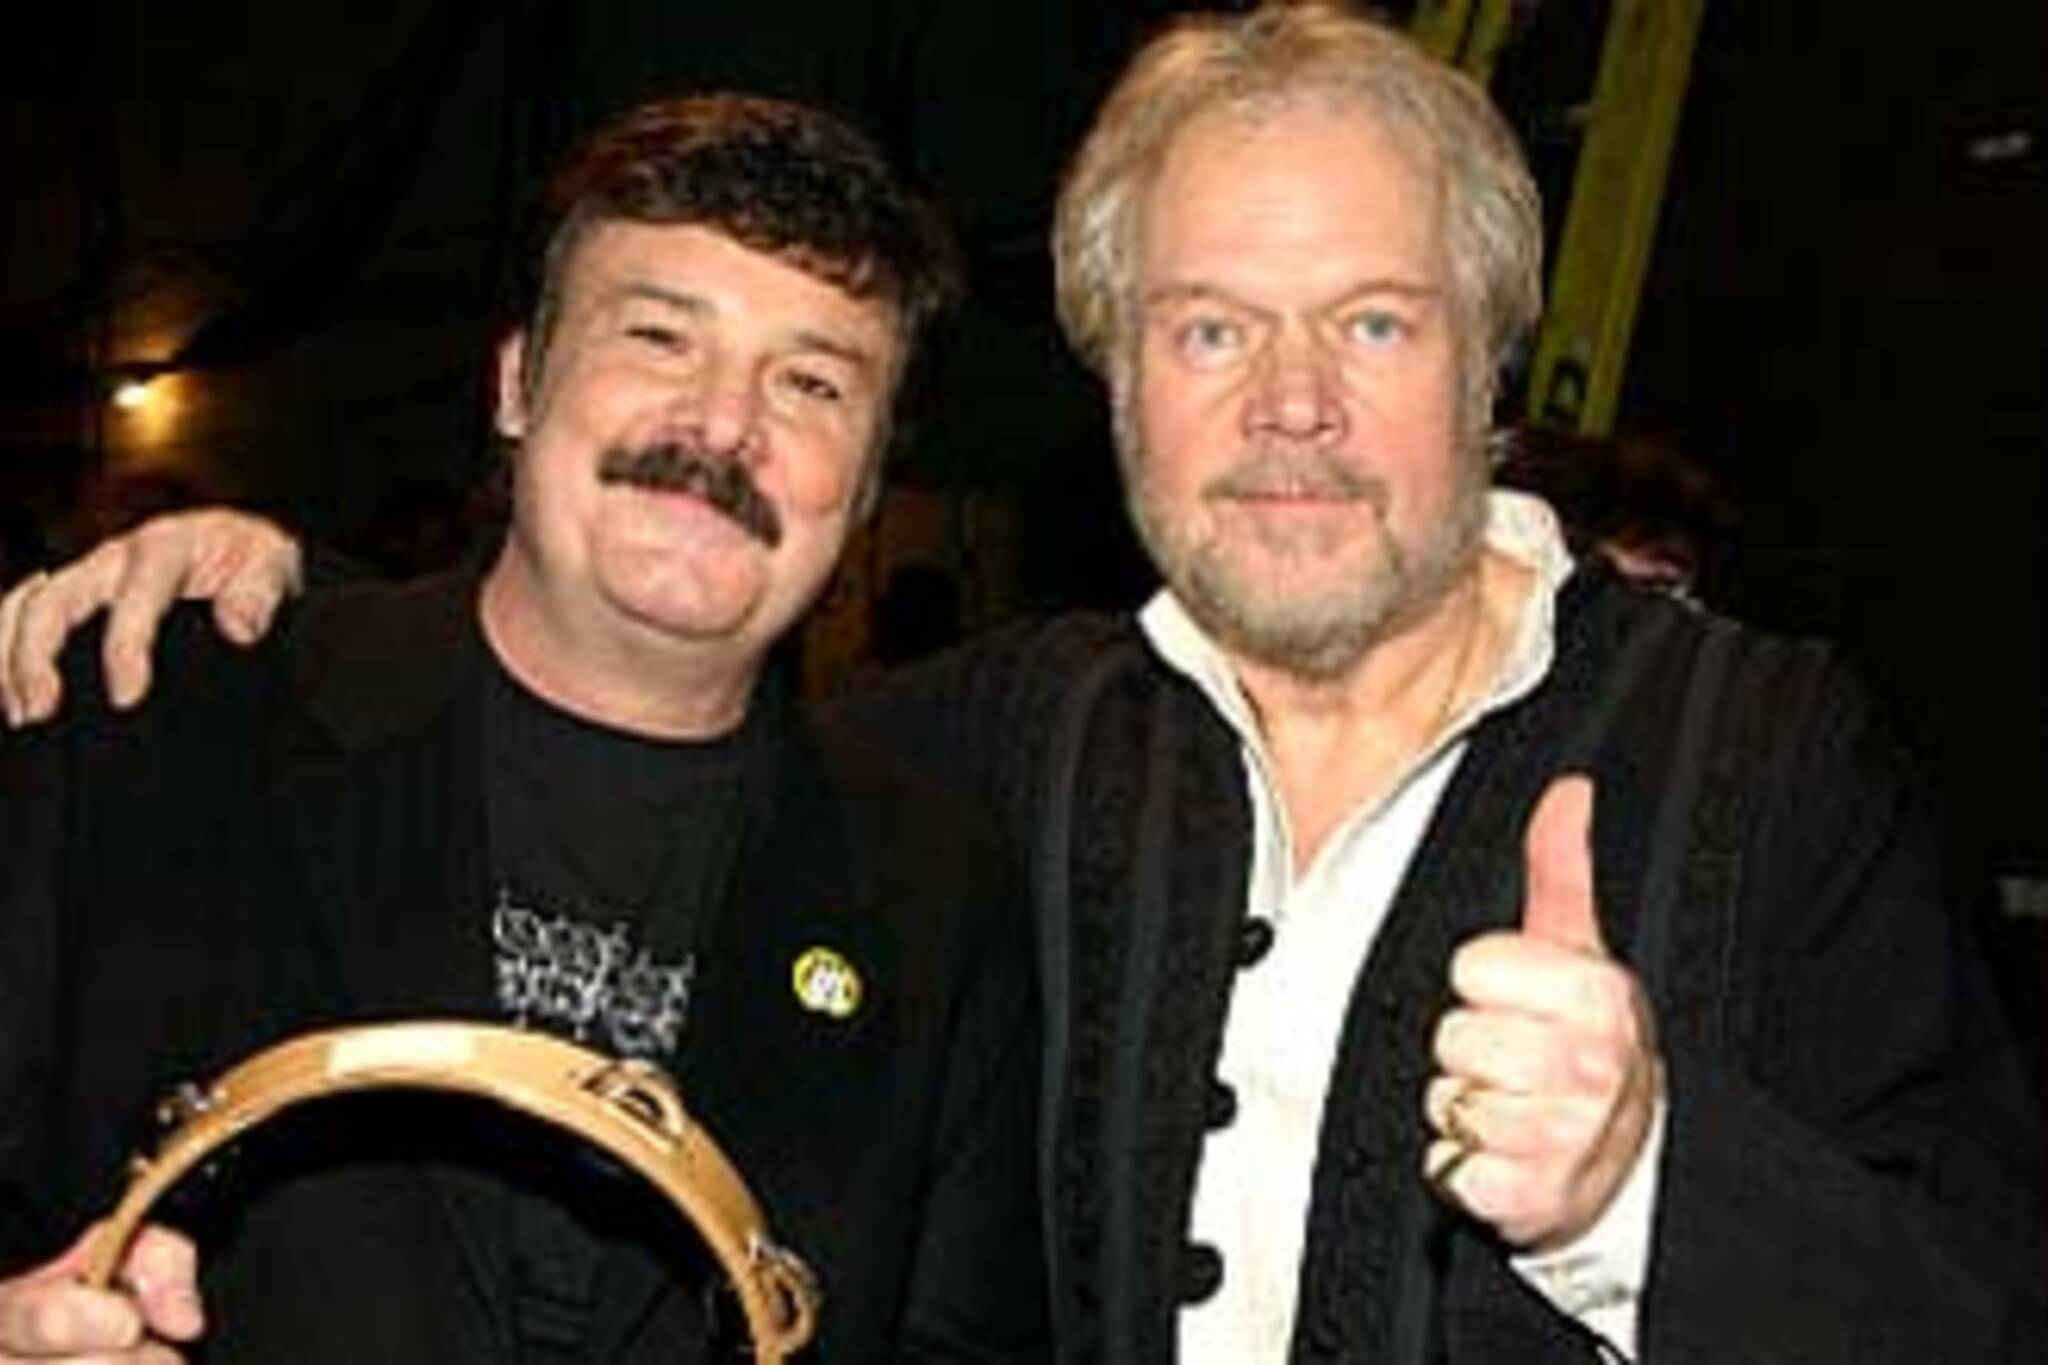 Randy Bachman and Burton Cummings